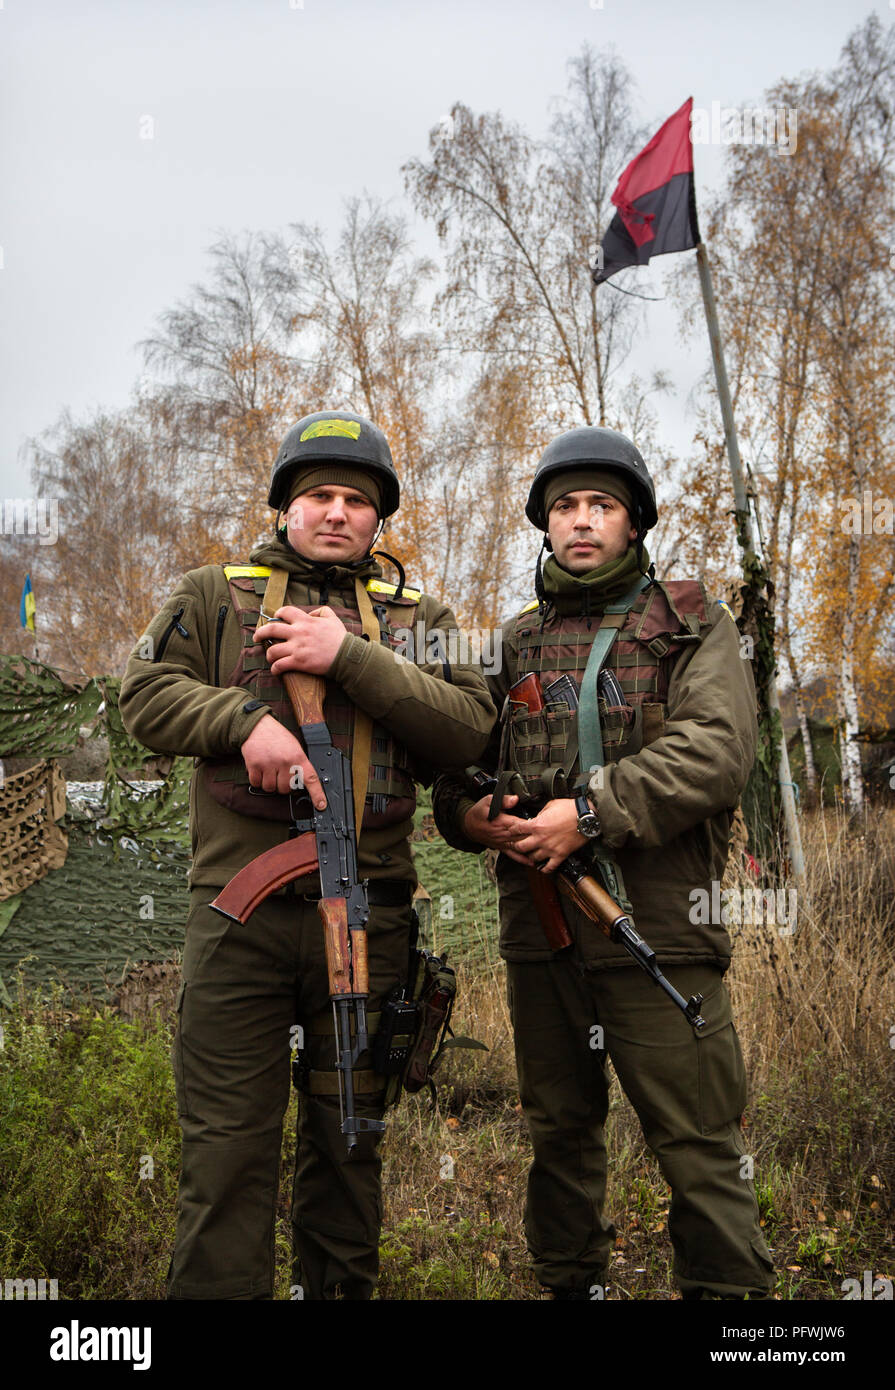 Soldiers in the Ukrainian Army at a checkpoint in eastern Ukraine, in front of the UPA (Ukranian Insurgent Army) flag. - Stock Image